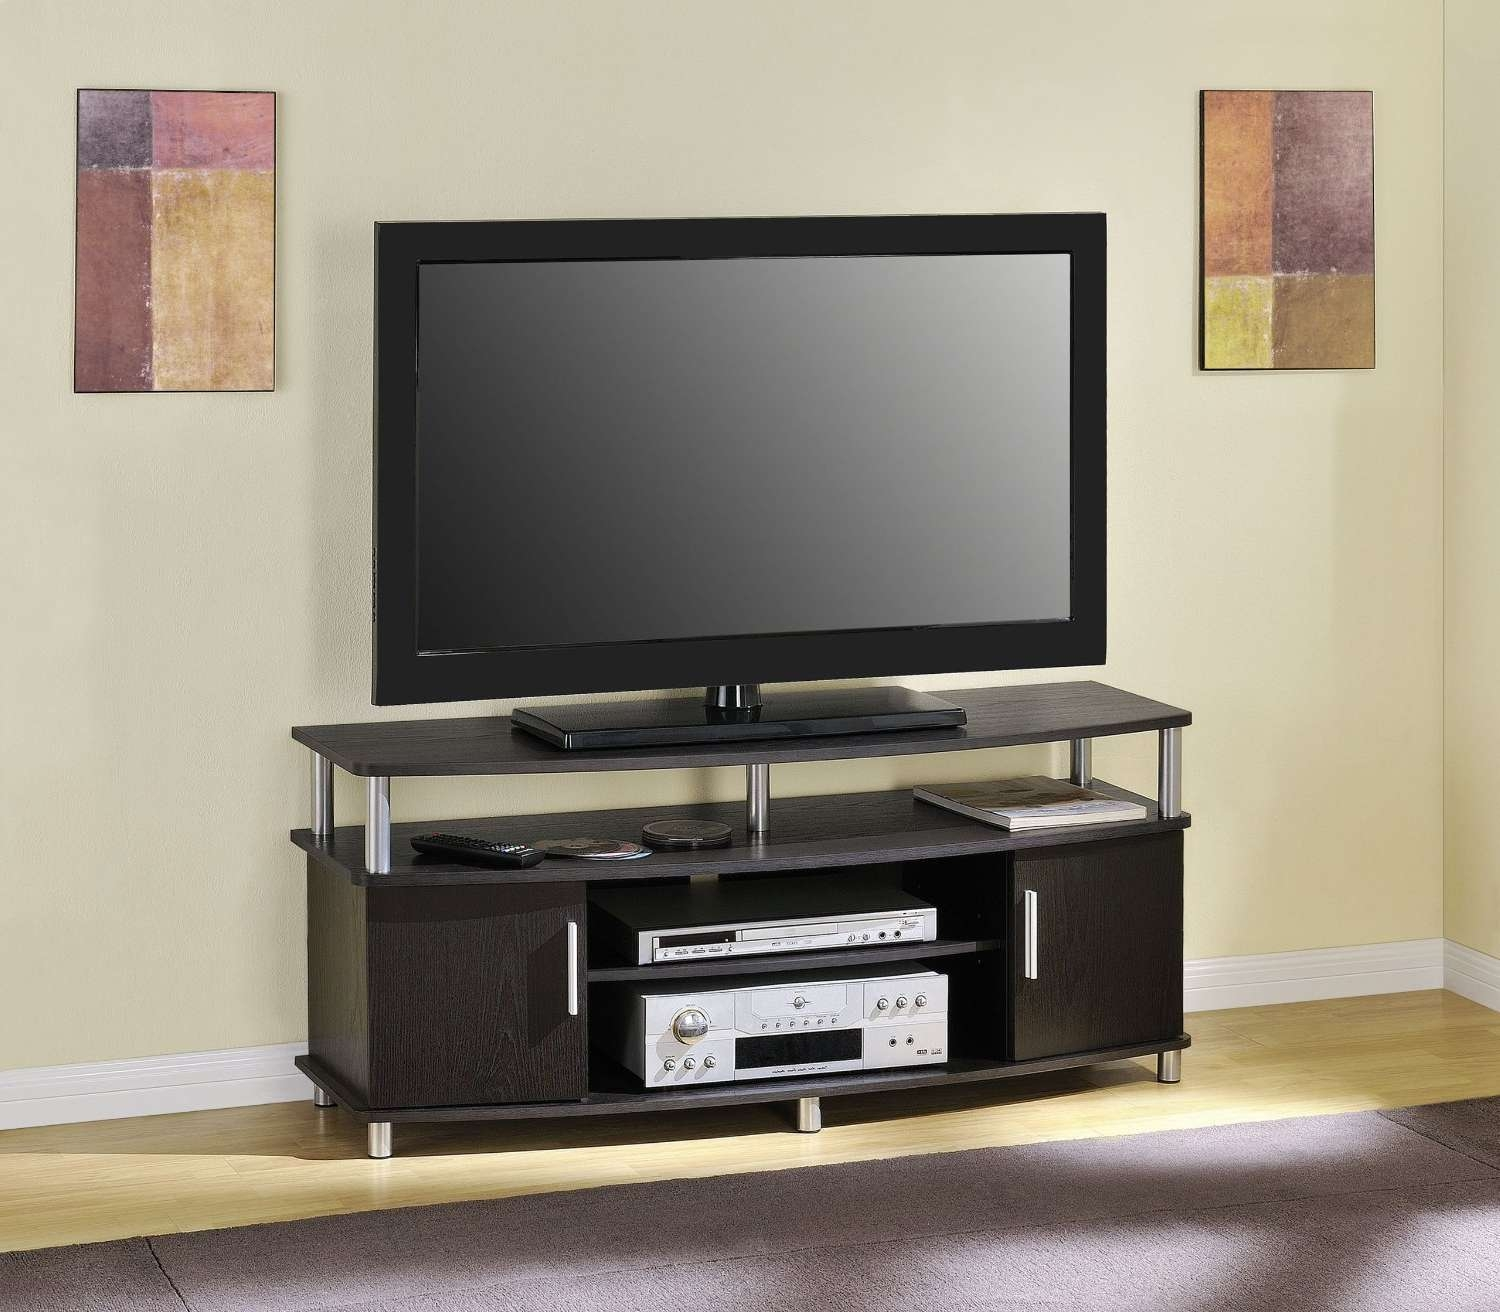 Tv Stands: 7 Best Selling Flat Screen Tv Stands 2017 Inside Tv Stands 40 Inches Wide (View 14 of 15)